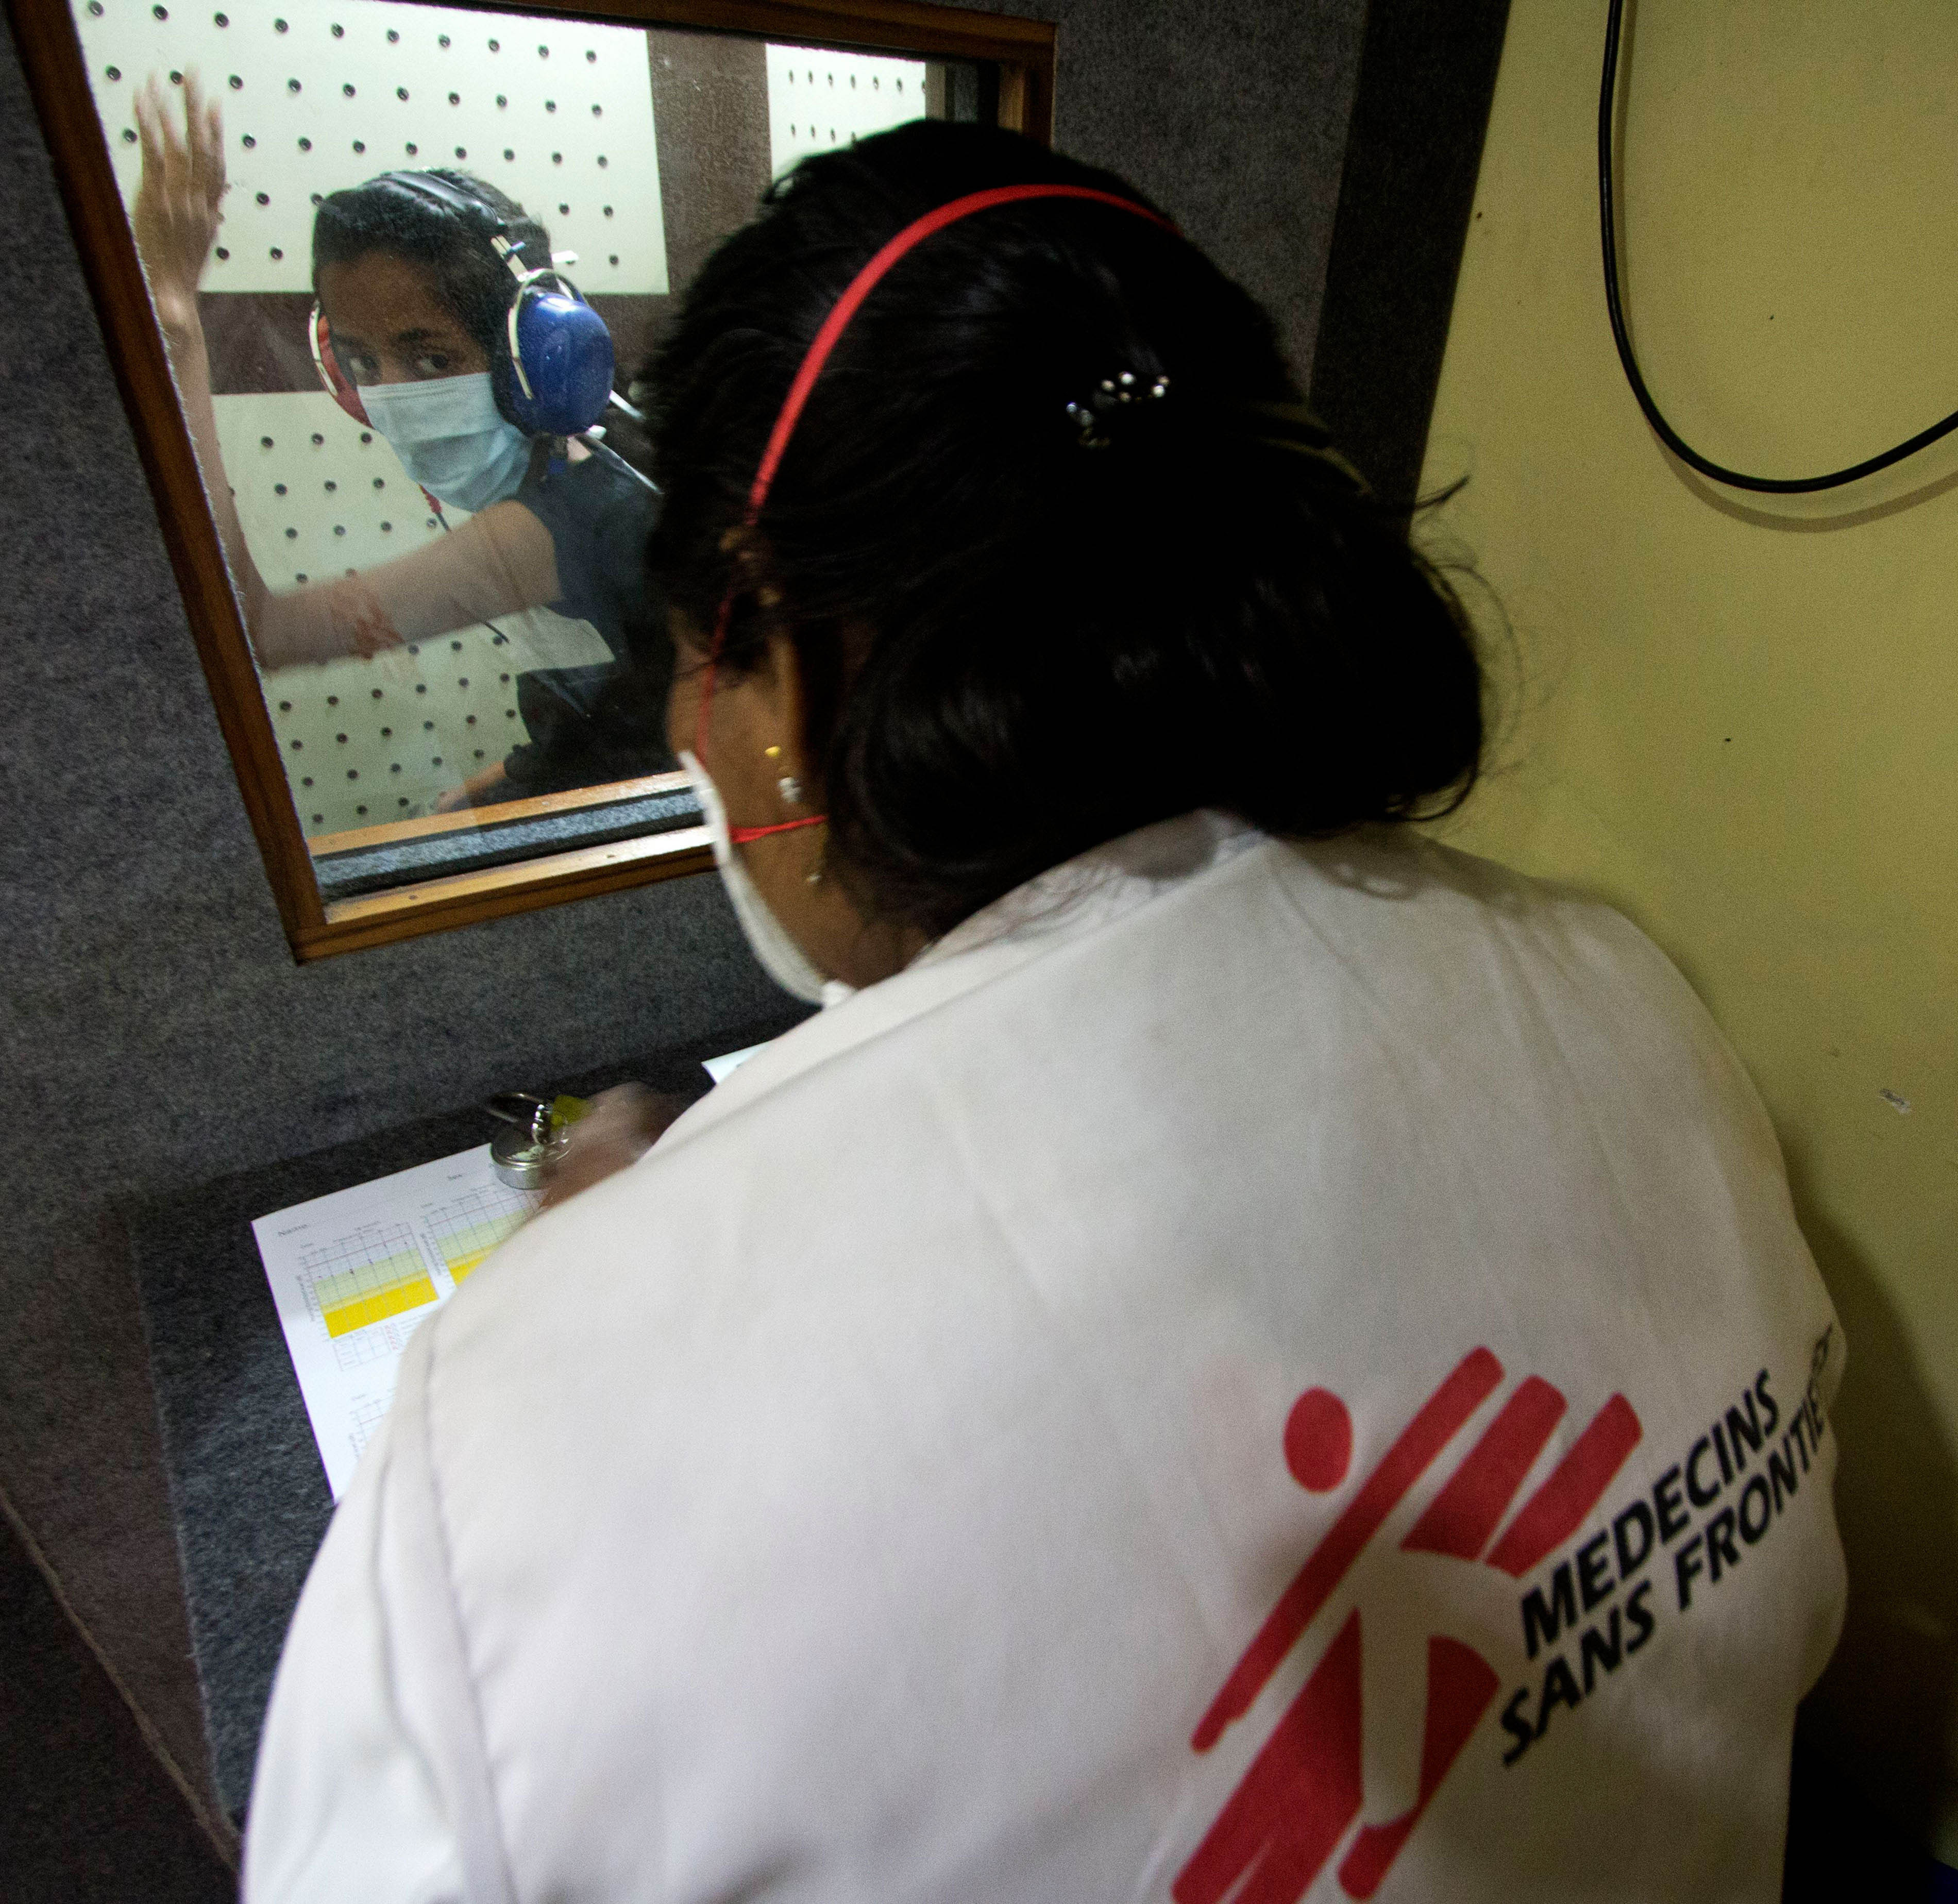 An Extensively Drug Resistant Tuberculosis (XDR-TB) patient undergoing an audiometry test to assess the hearing ability, as hearing loss is one of the side-effects of DRTB drugs